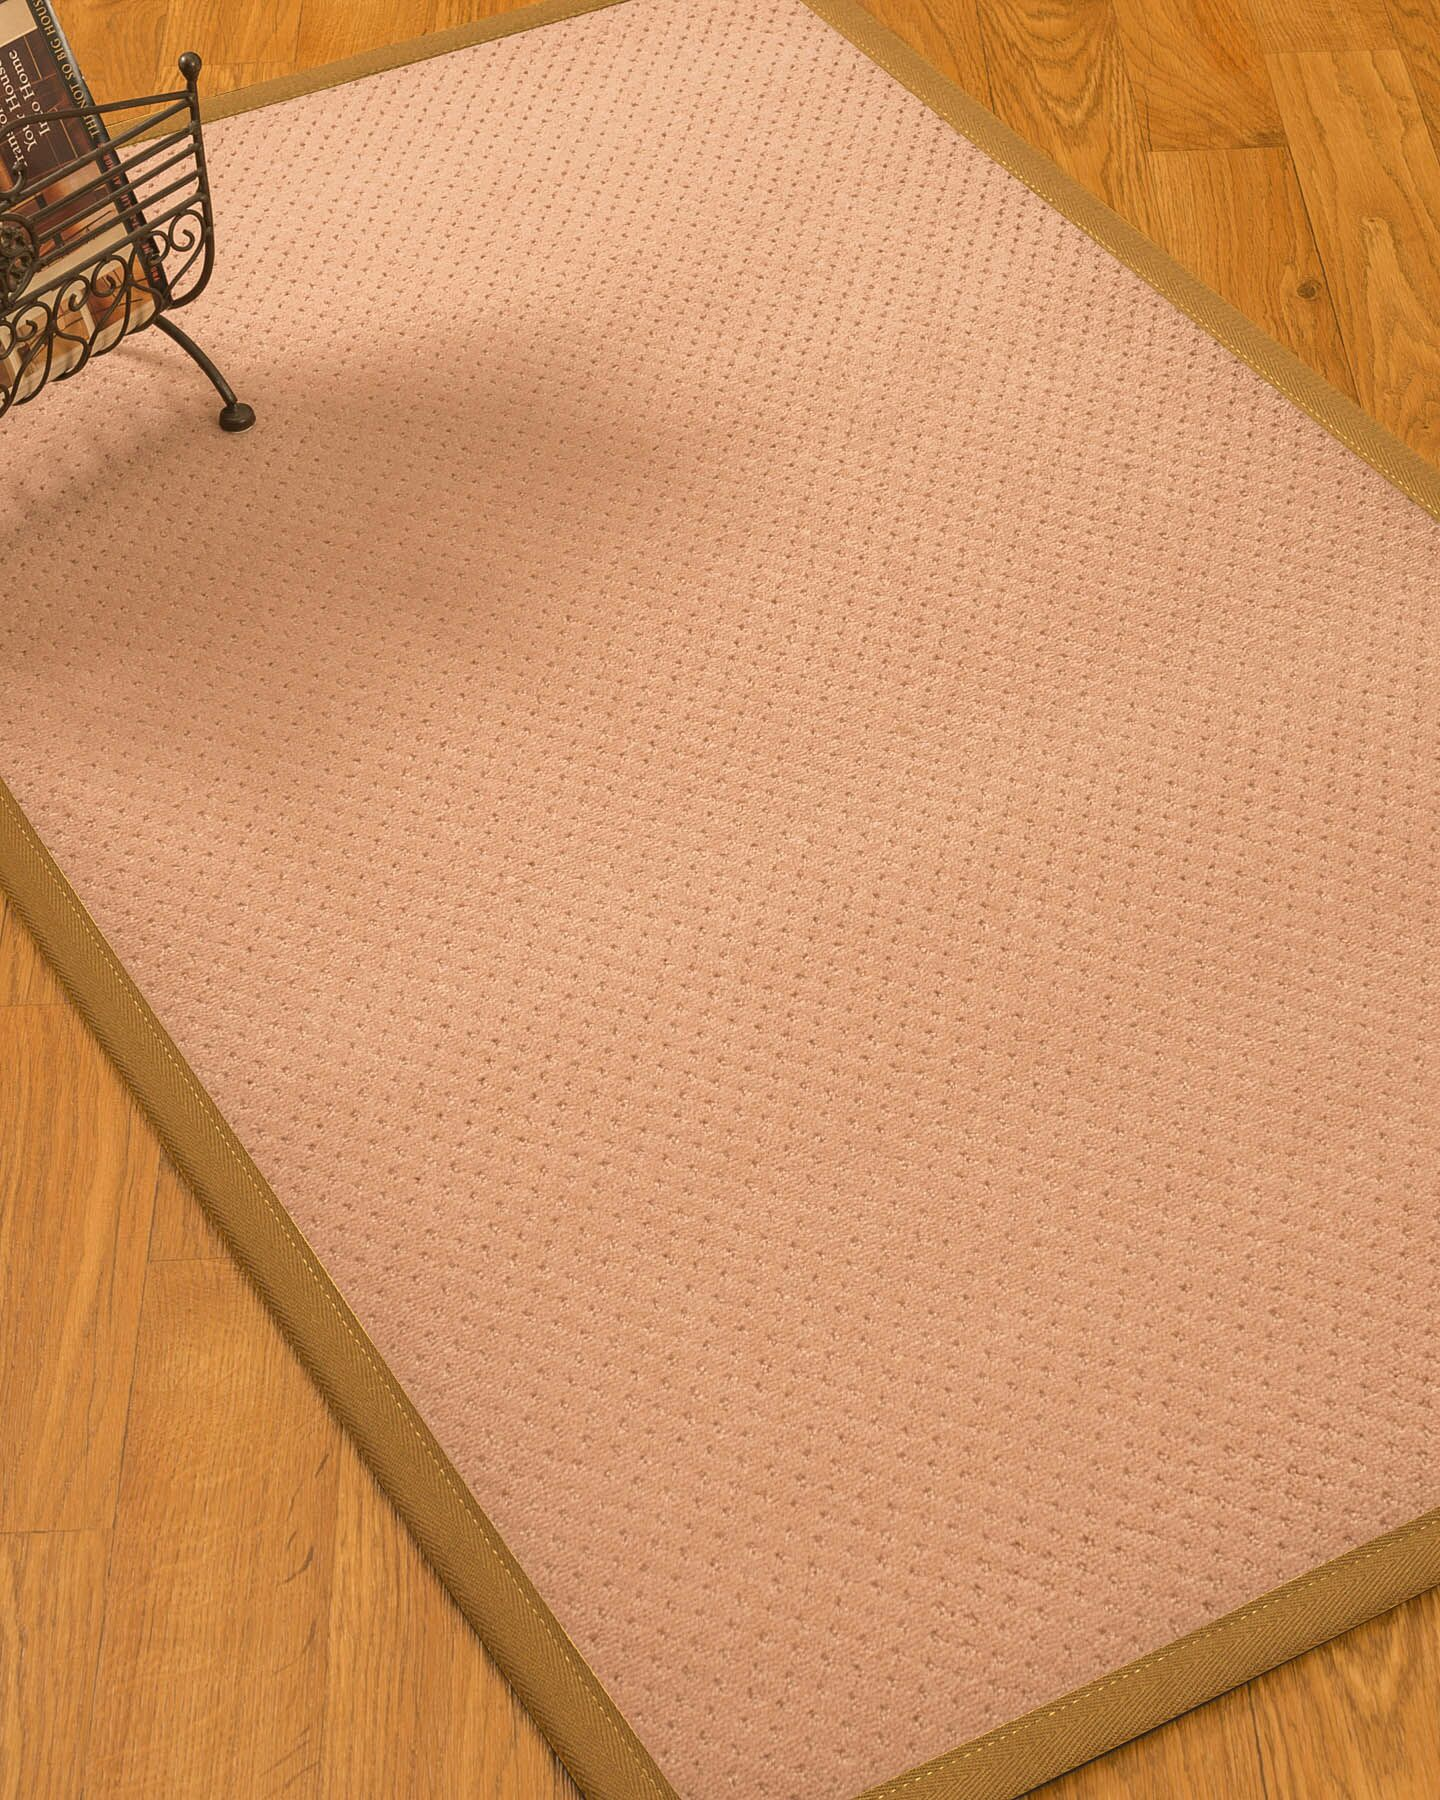 Farnham Border Hand-Woven Wool Pink/Khaki Area Rug Rug Size: Rectangle 5' x 8', Rug Pad Included: Yes